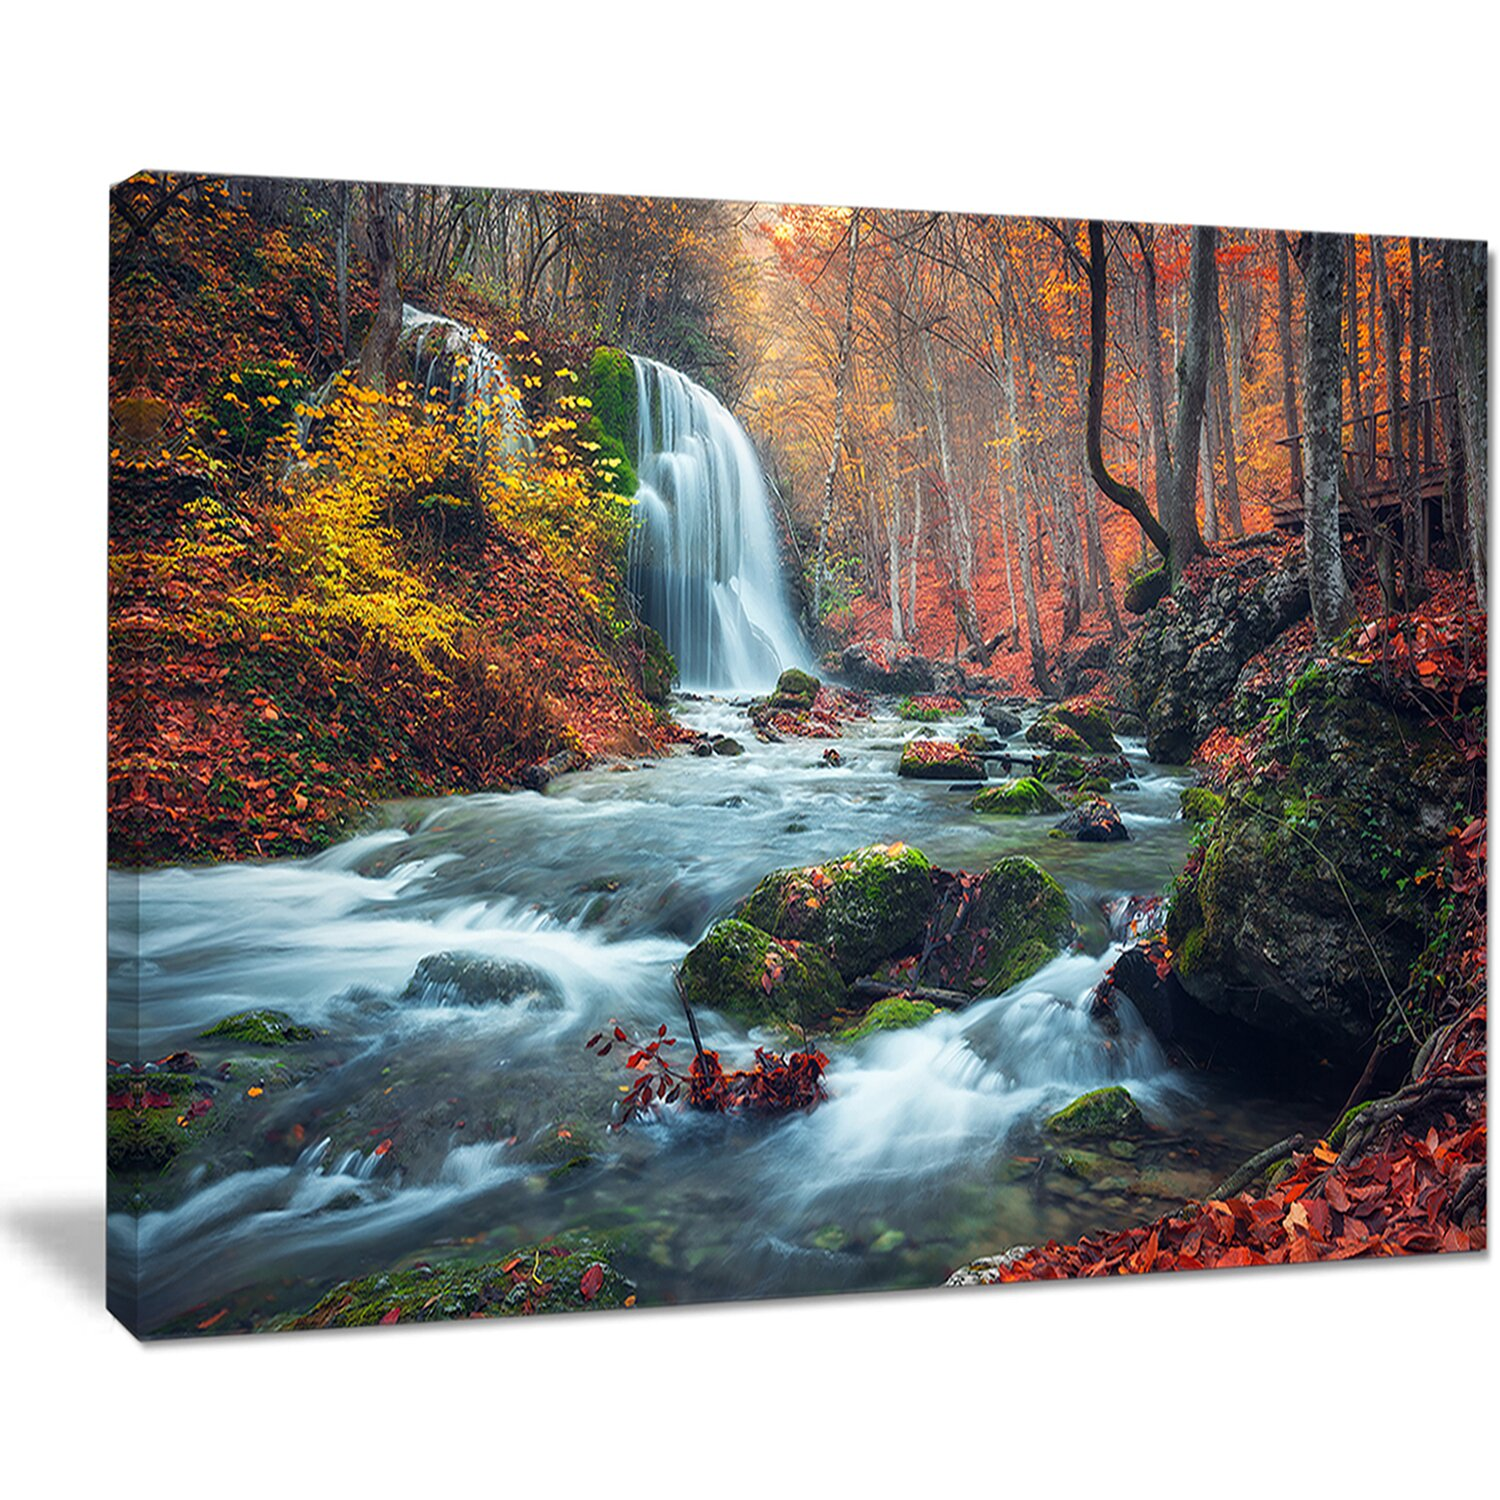 DesignArt 'Autumn Mountain Waterfall Long View' Photographic Print on Wrapped Canvas & Reviews | Wayfair